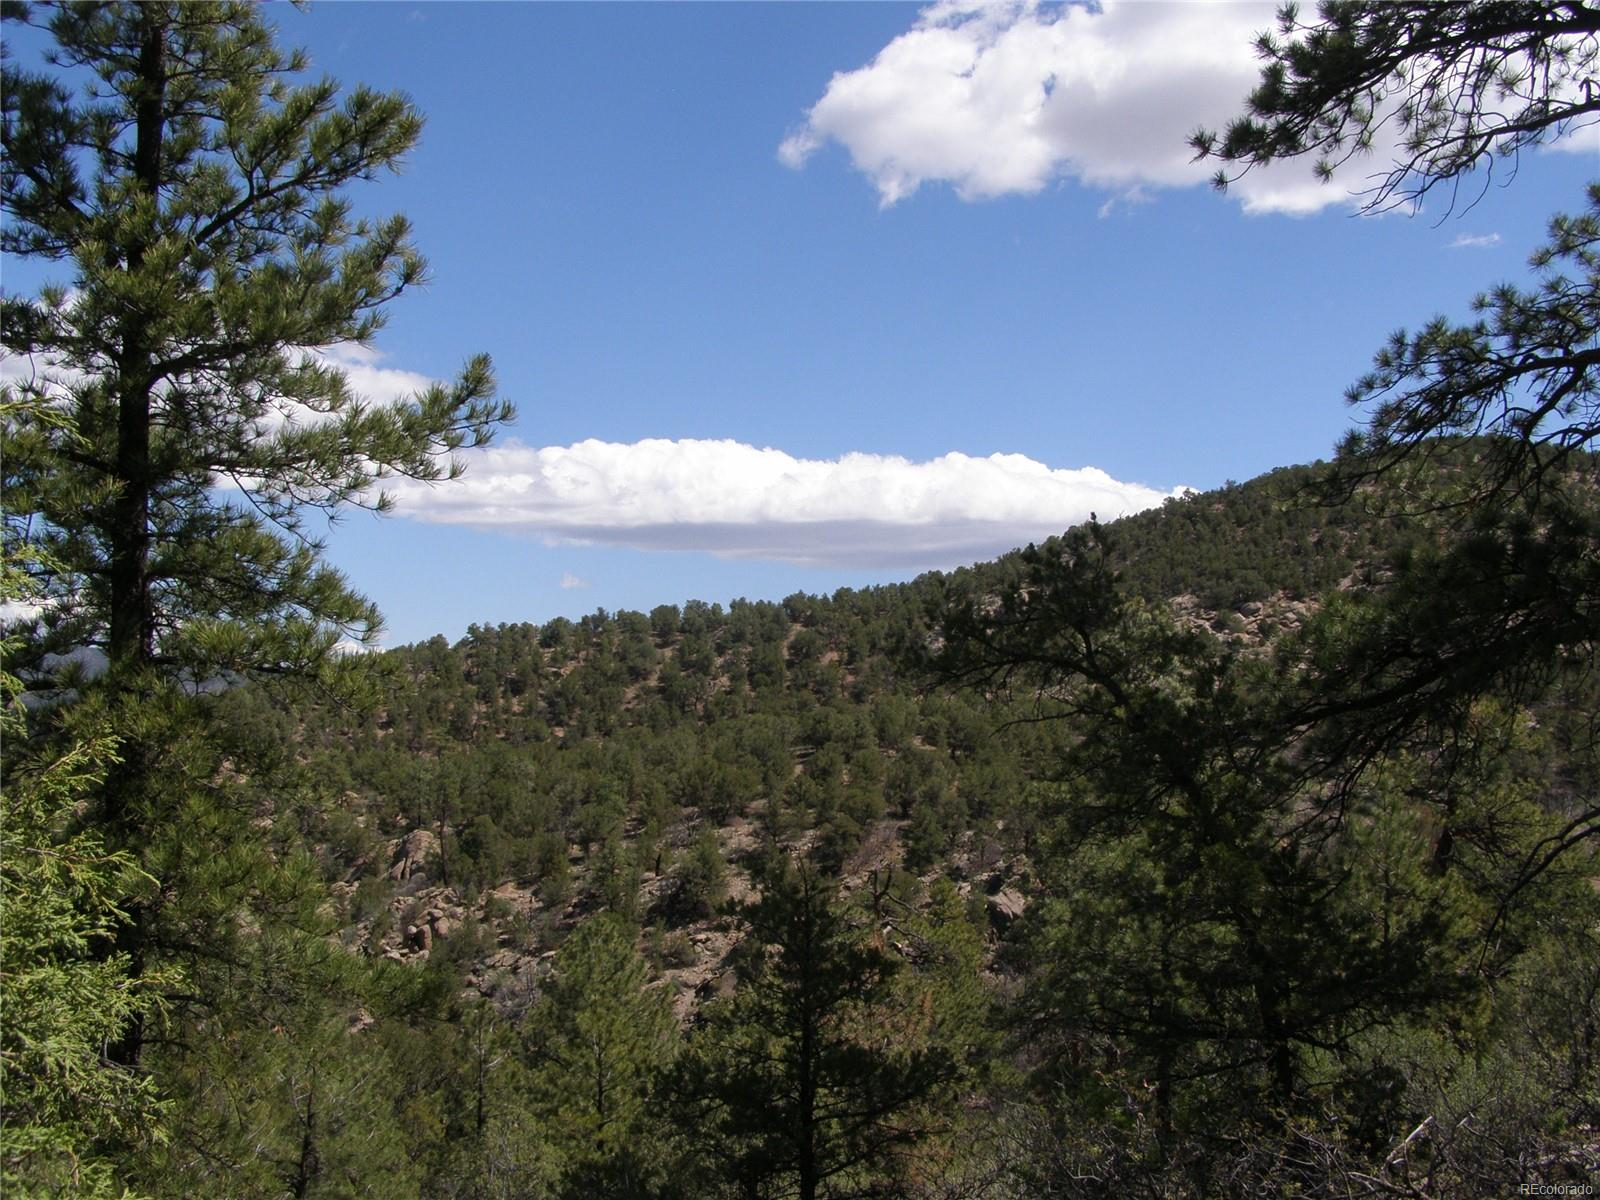 Lot 5 Fil #13 Redtail Trail, Cotopaxi, CO 81223 - Cotopaxi, CO real estate listing